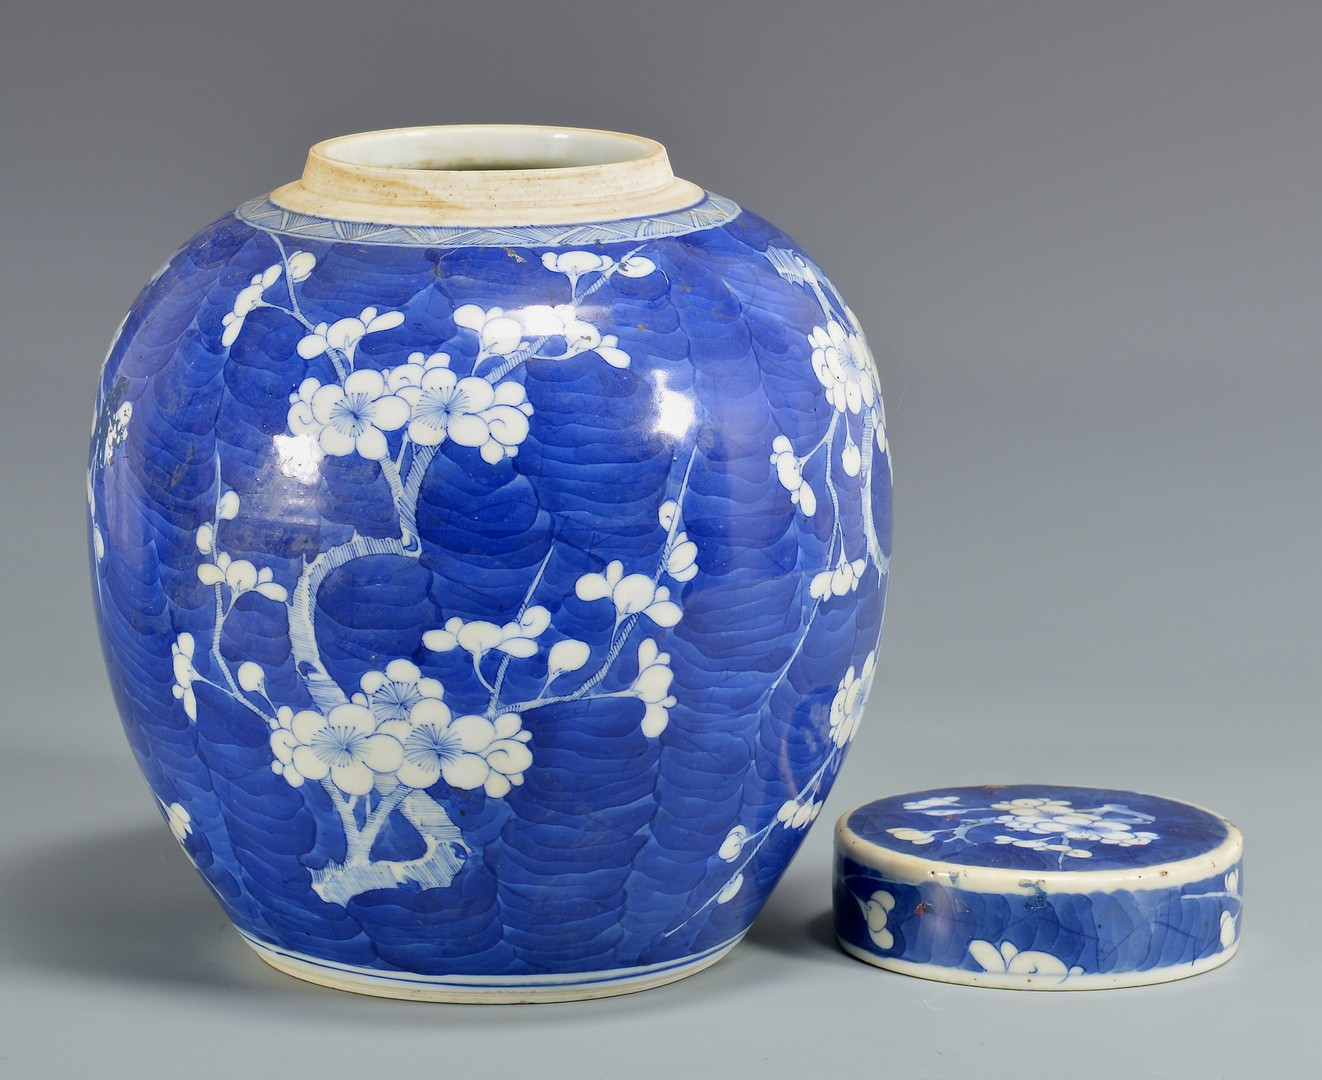 Lot 4010131: Chinese Hawthorne Ginger Jar